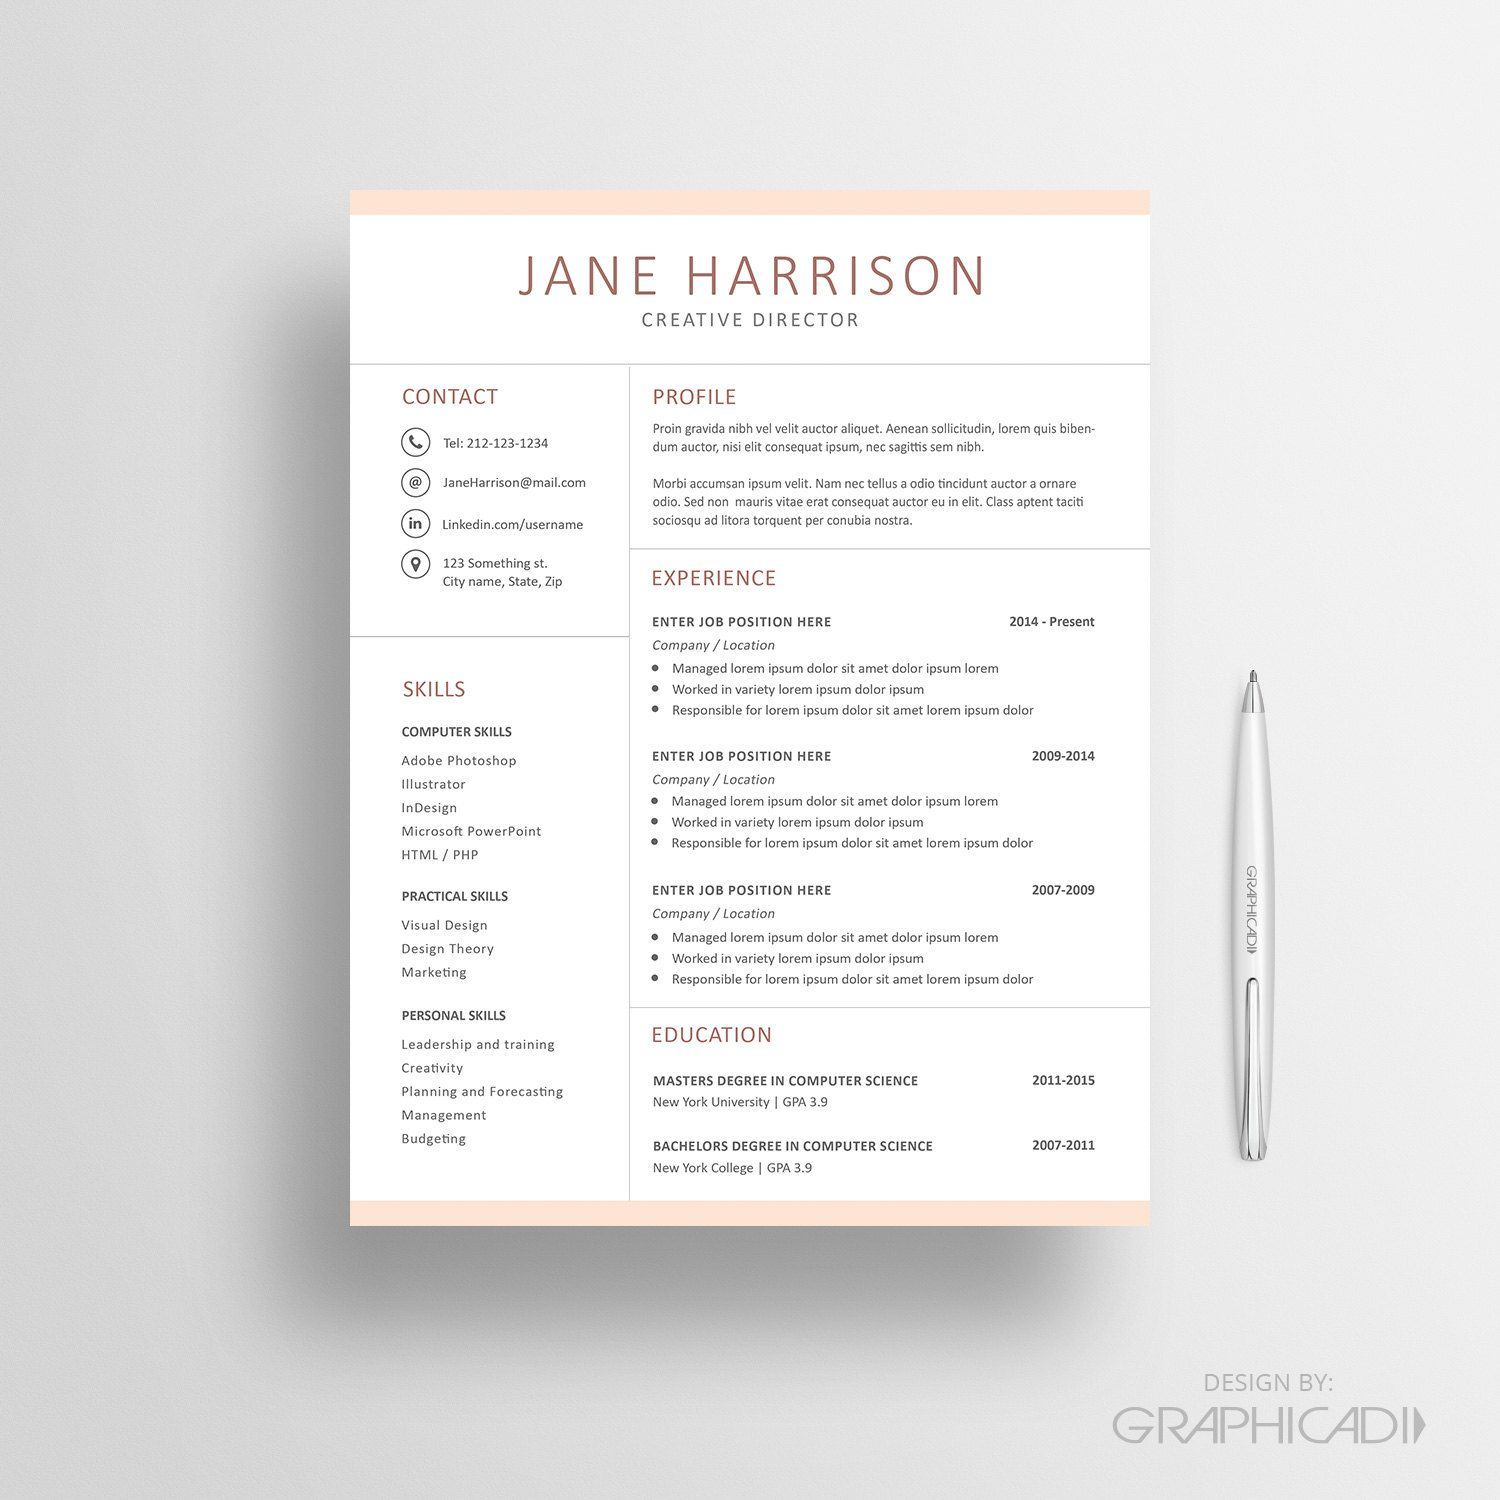 Microsoft Word Resume Cover Letter Template Fair Resume Template  Cv Template Cover Letter And Reference Page For